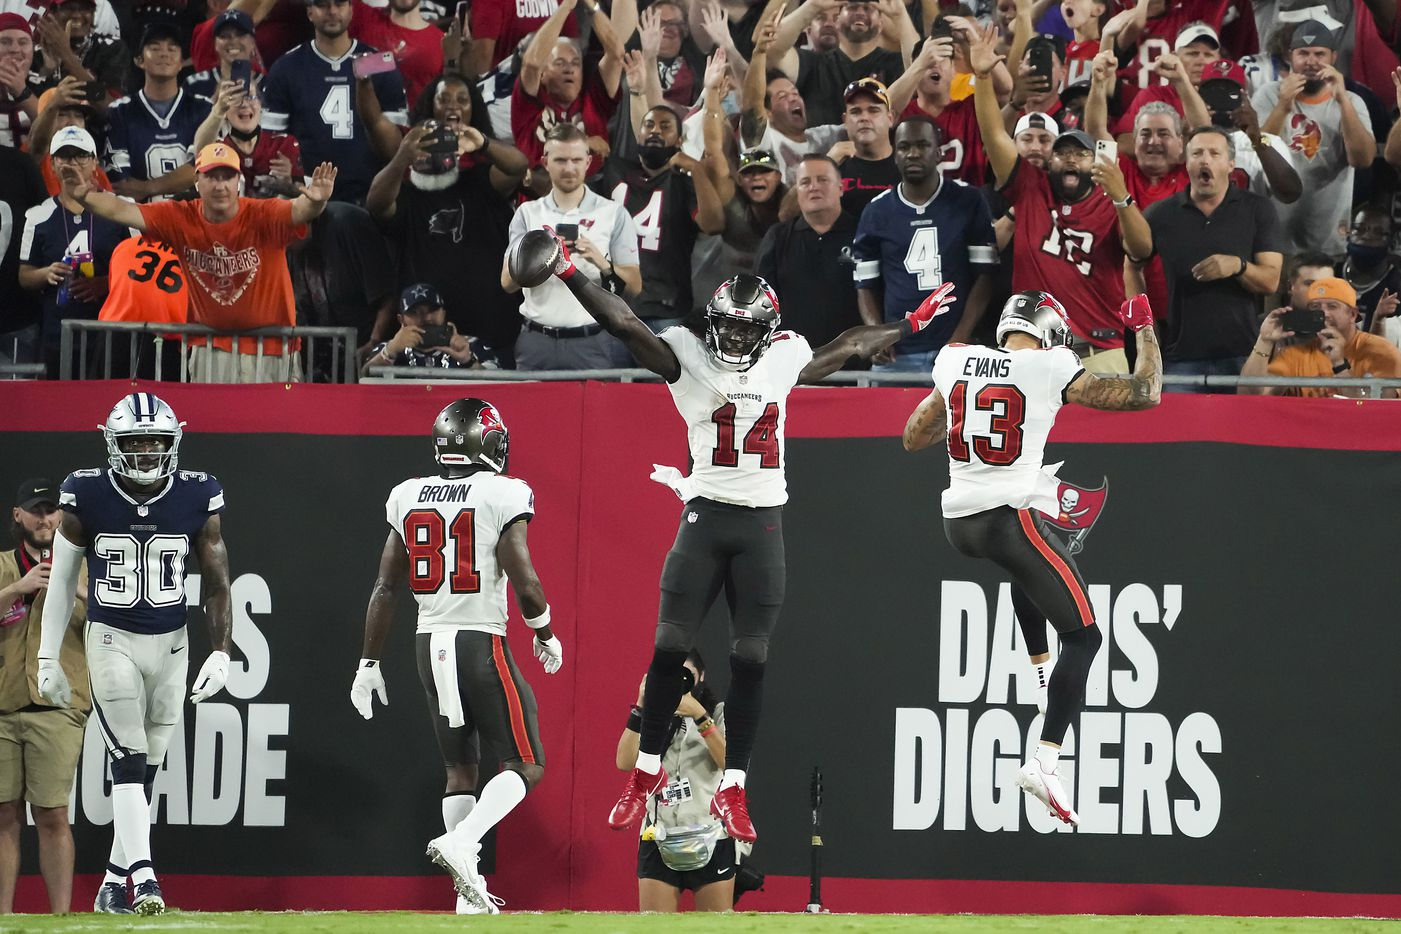 Tampa Bay Buccaneers wide receiver Chris Godwin (14) celebrates a touchdown catch with wide receiver Antonio Brown (81) and wide receiver Mike Evans (13) as Dallas Cowboys cornerback Anthony Brown (30) looks on during the first half of an NFL football game at Raymond James Stadium on Thursday, Sept. 9, 2021, in Tampa, Fla. (Smiley N. Pool/The Dallas Morning News)